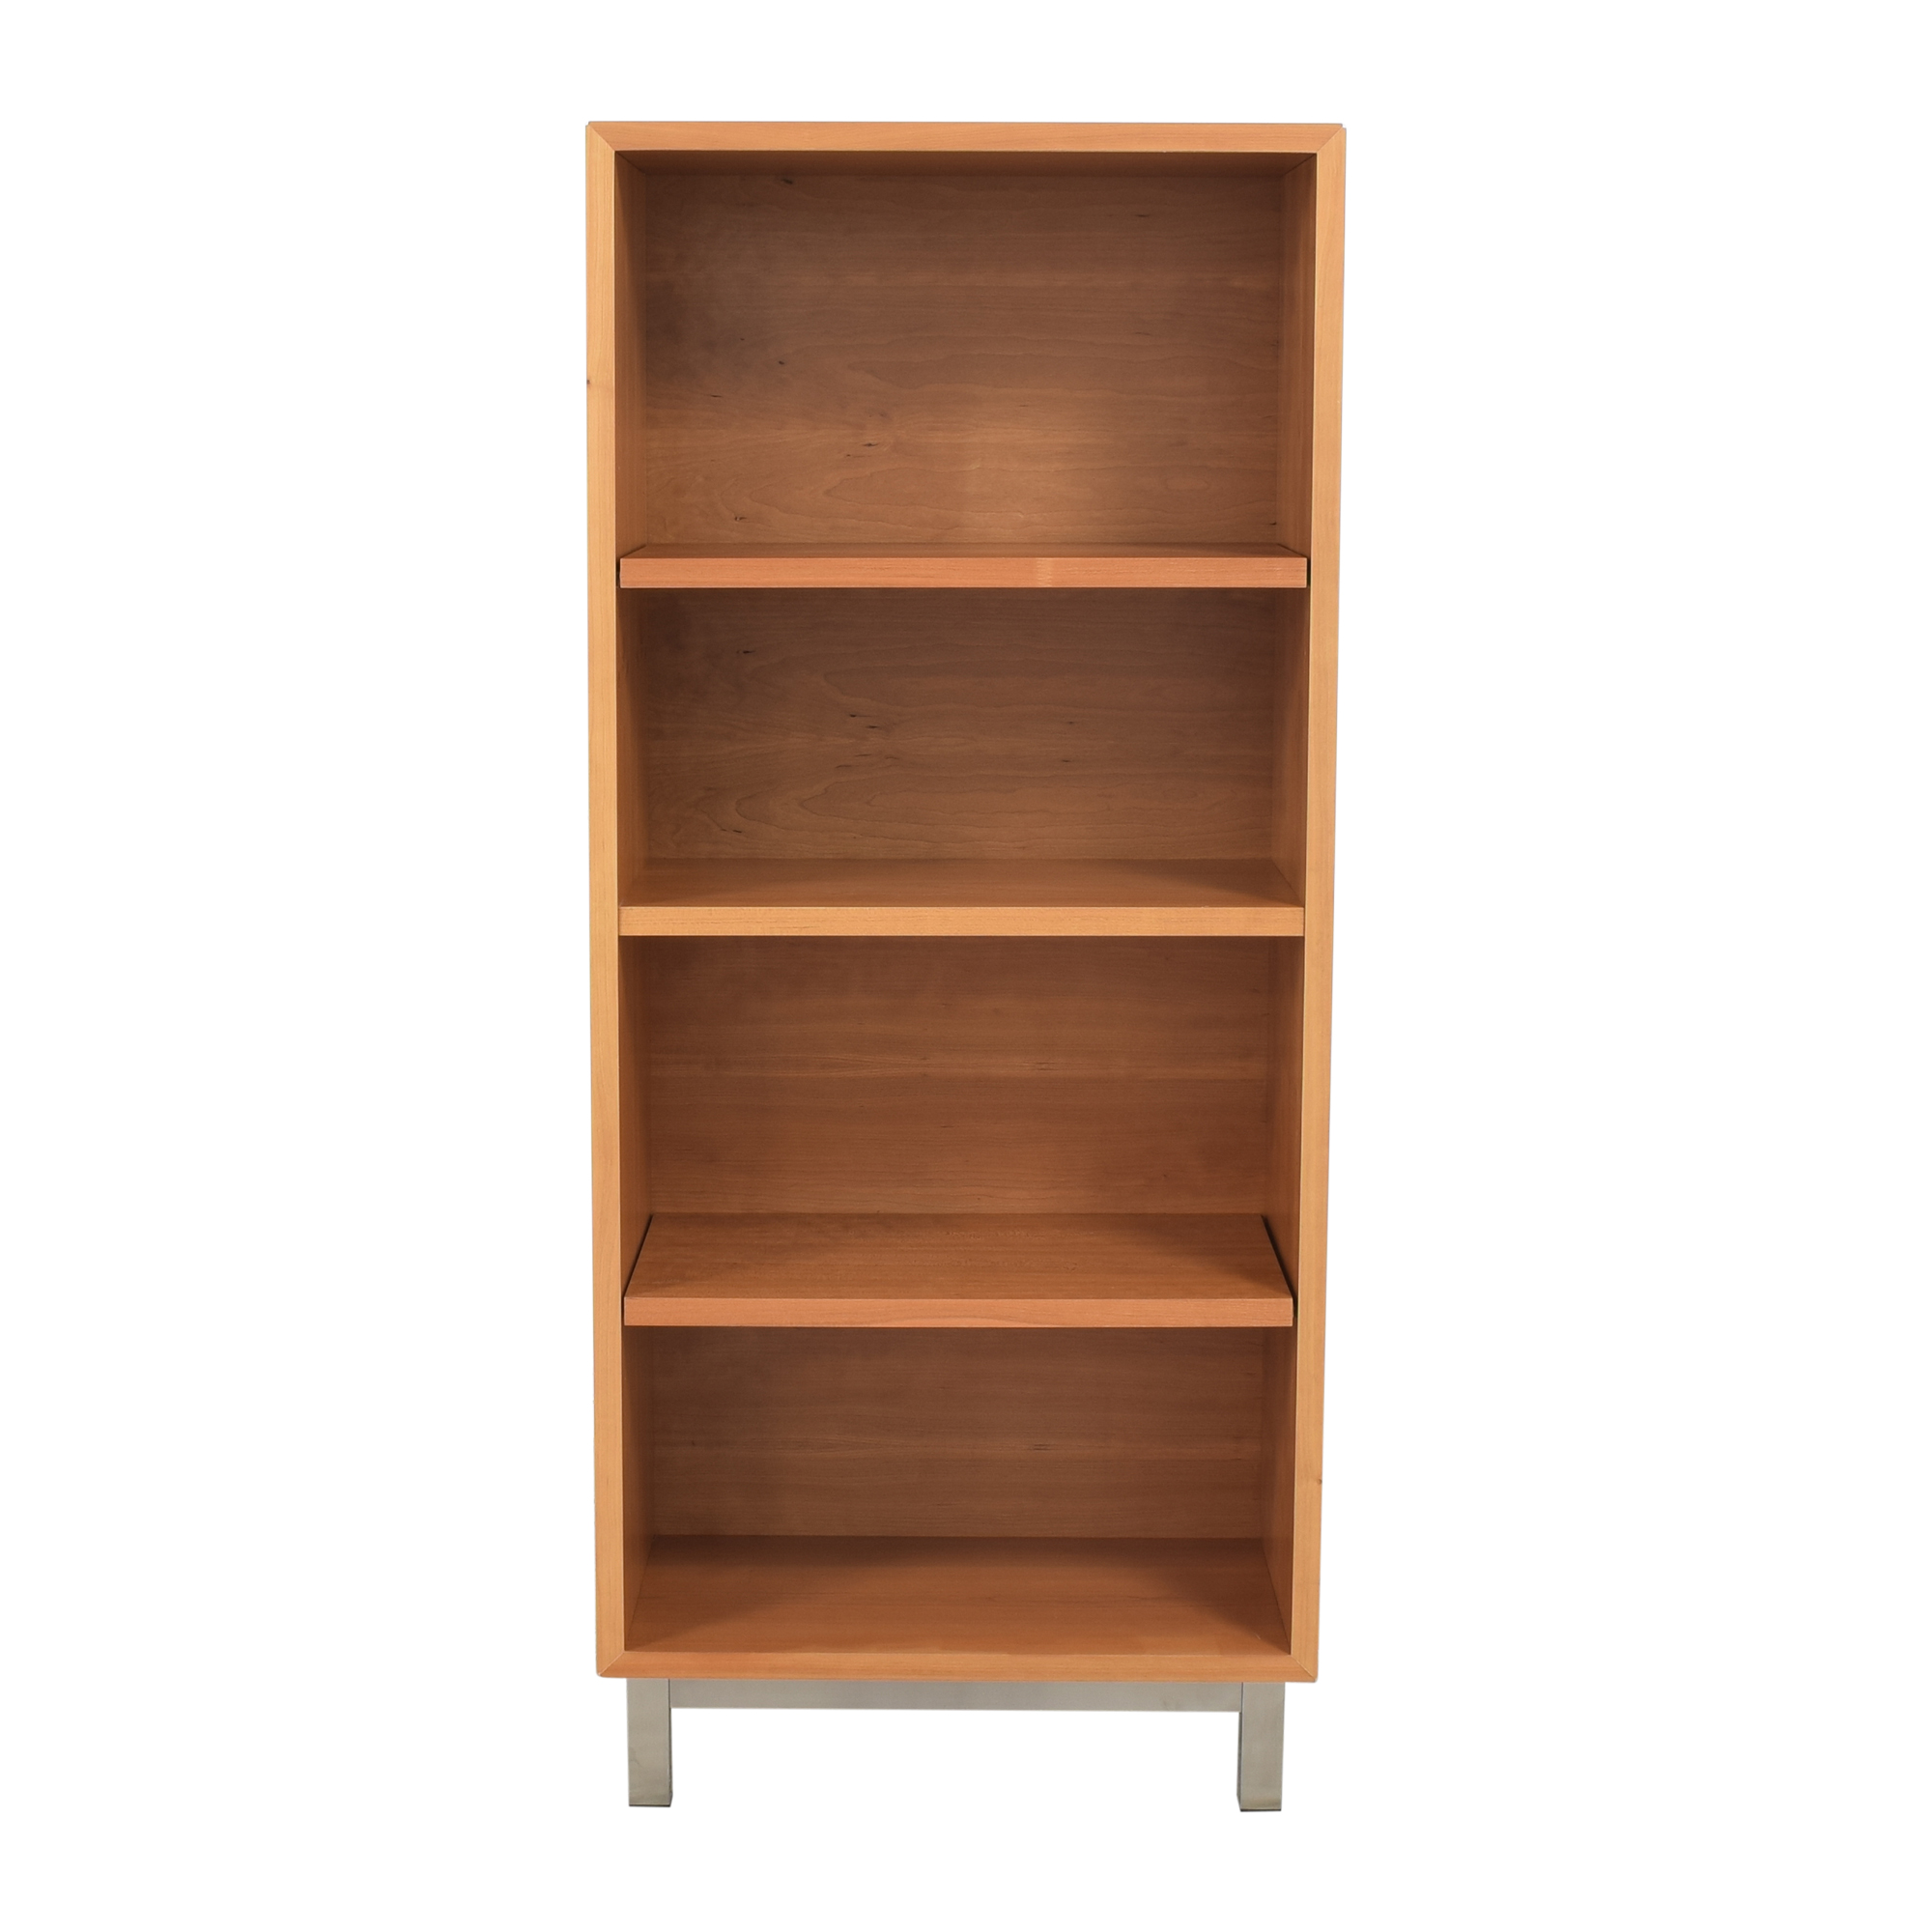 Room & Board Room & Board Copenhagen Bookcase for sale